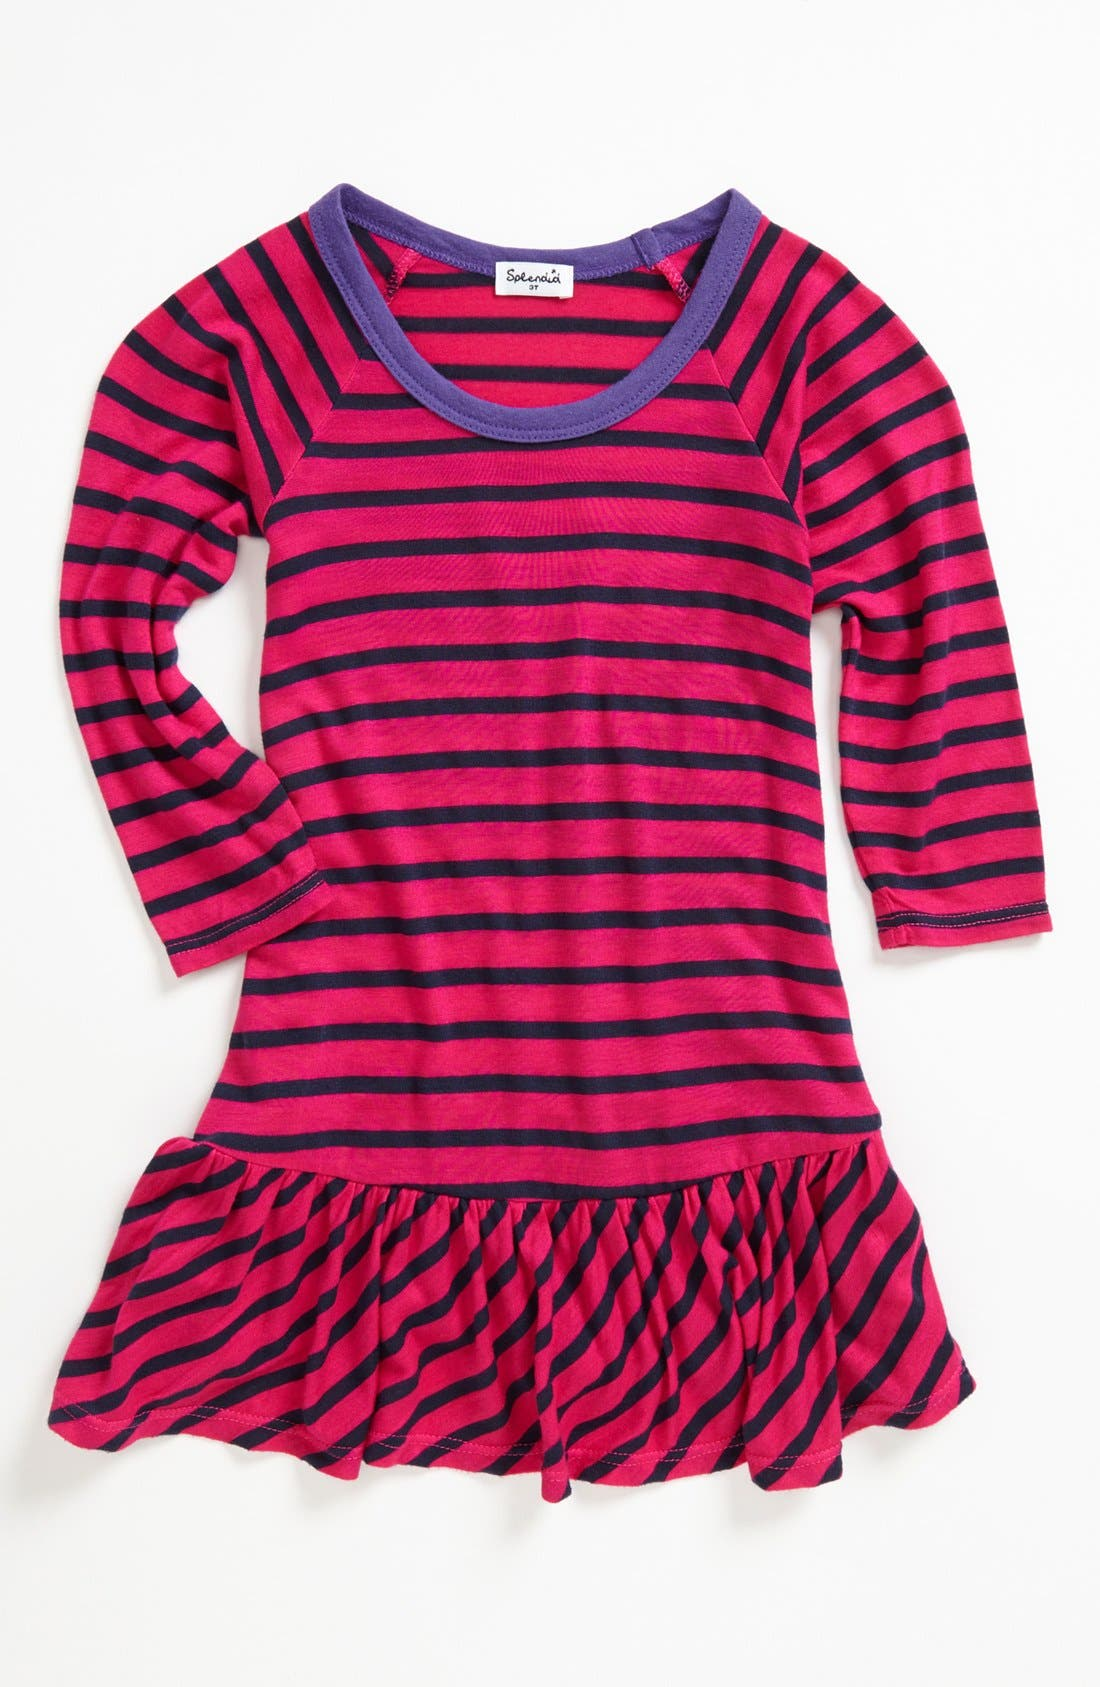 Main Image - Splendid Drop Waist Dress (Toddler Girls) (Online Only)